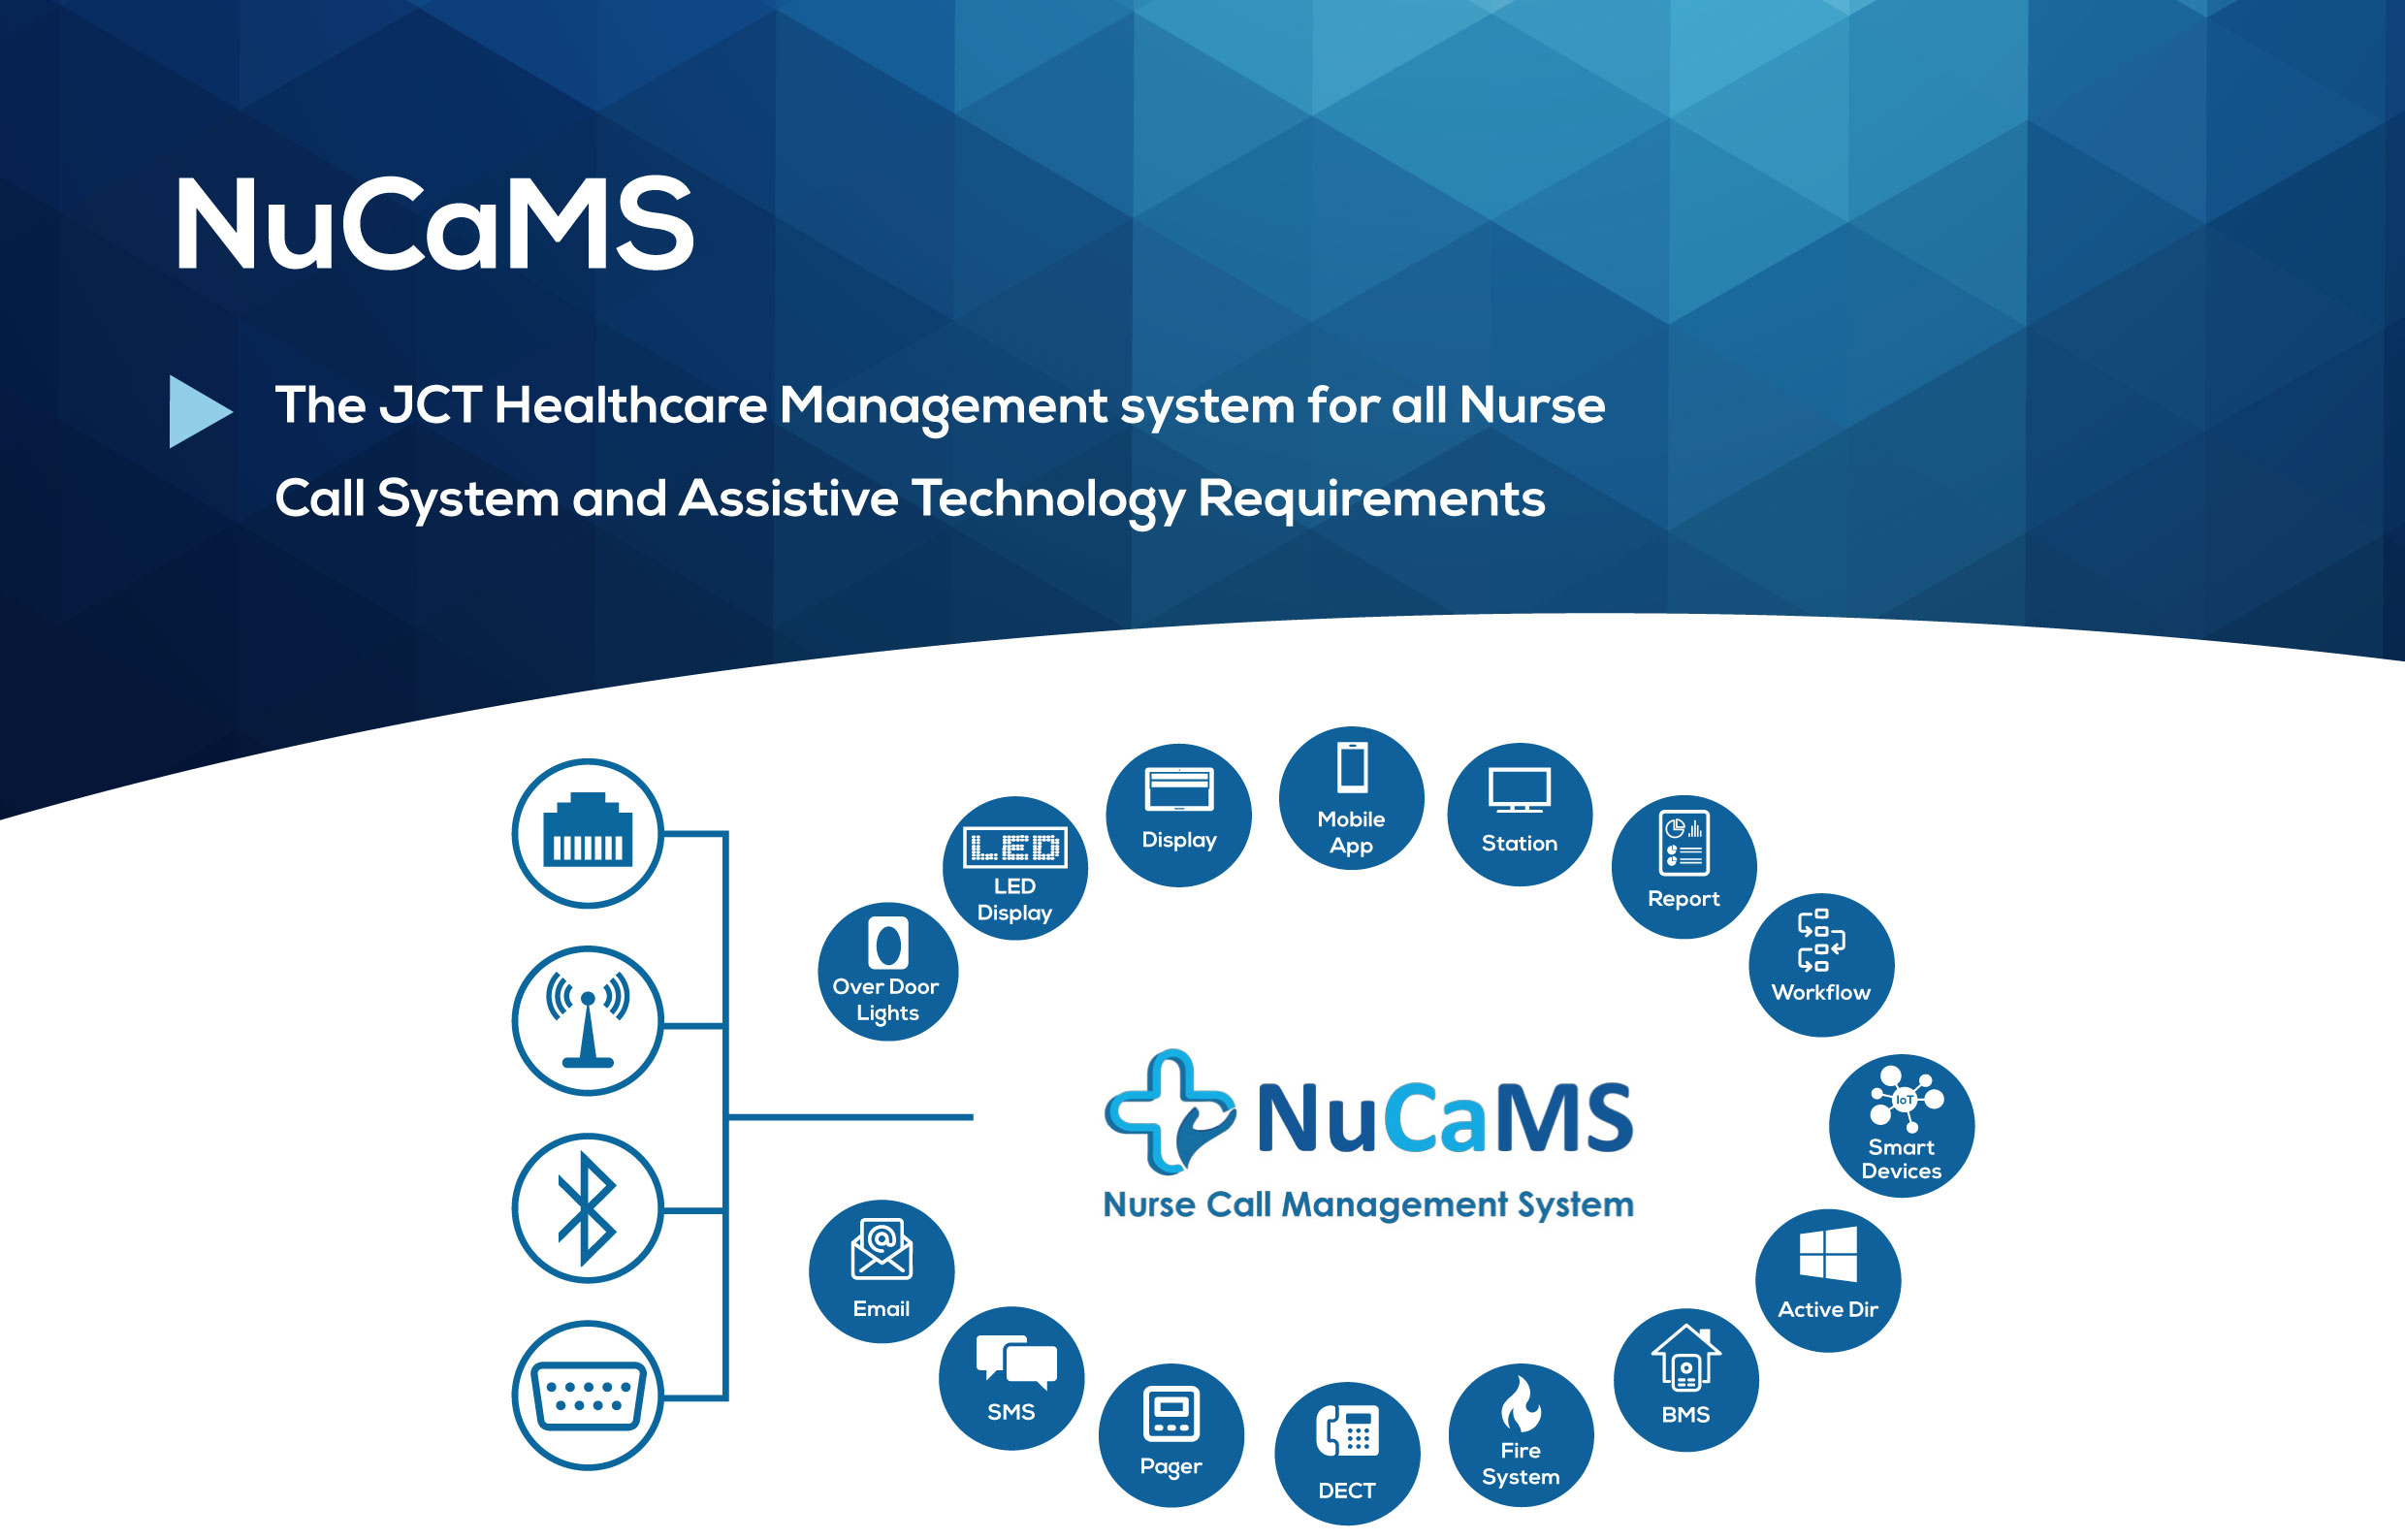 Nurse Call System (NuCaMS) - JCT Healthcare Technology